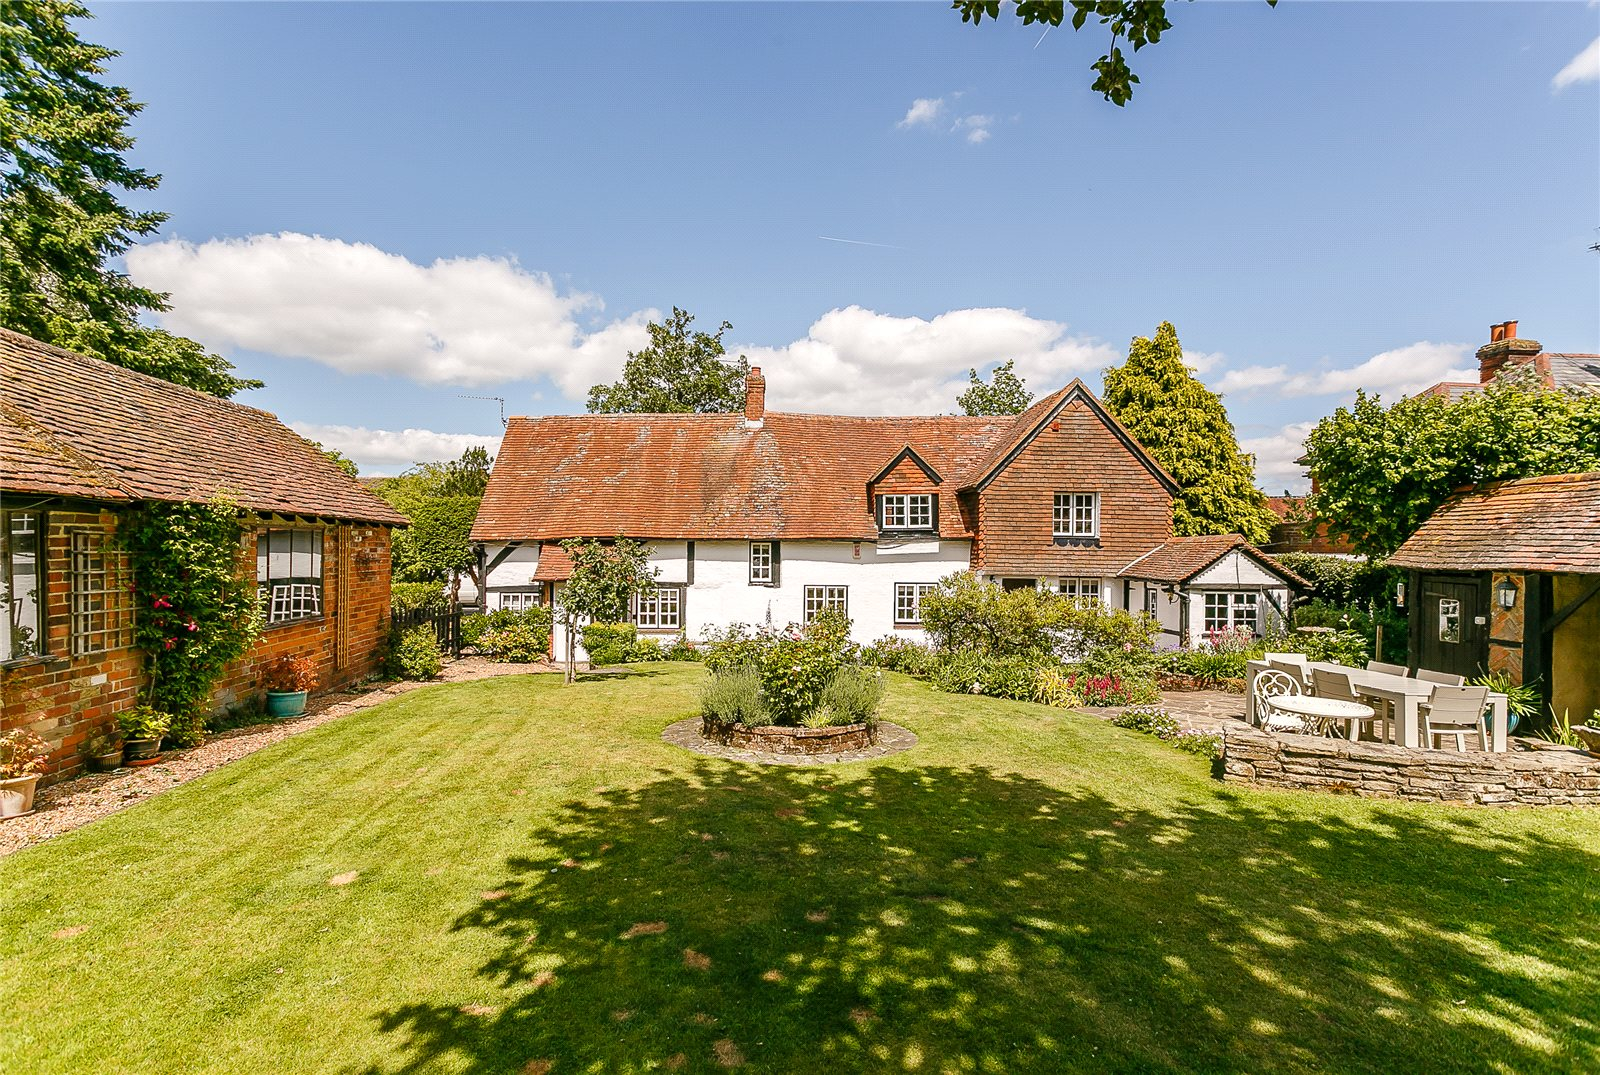 Villa per Vendita alle ore The Street, Crookham Village, Fleet, Hampshire, GU51 Fleet, Inghilterra